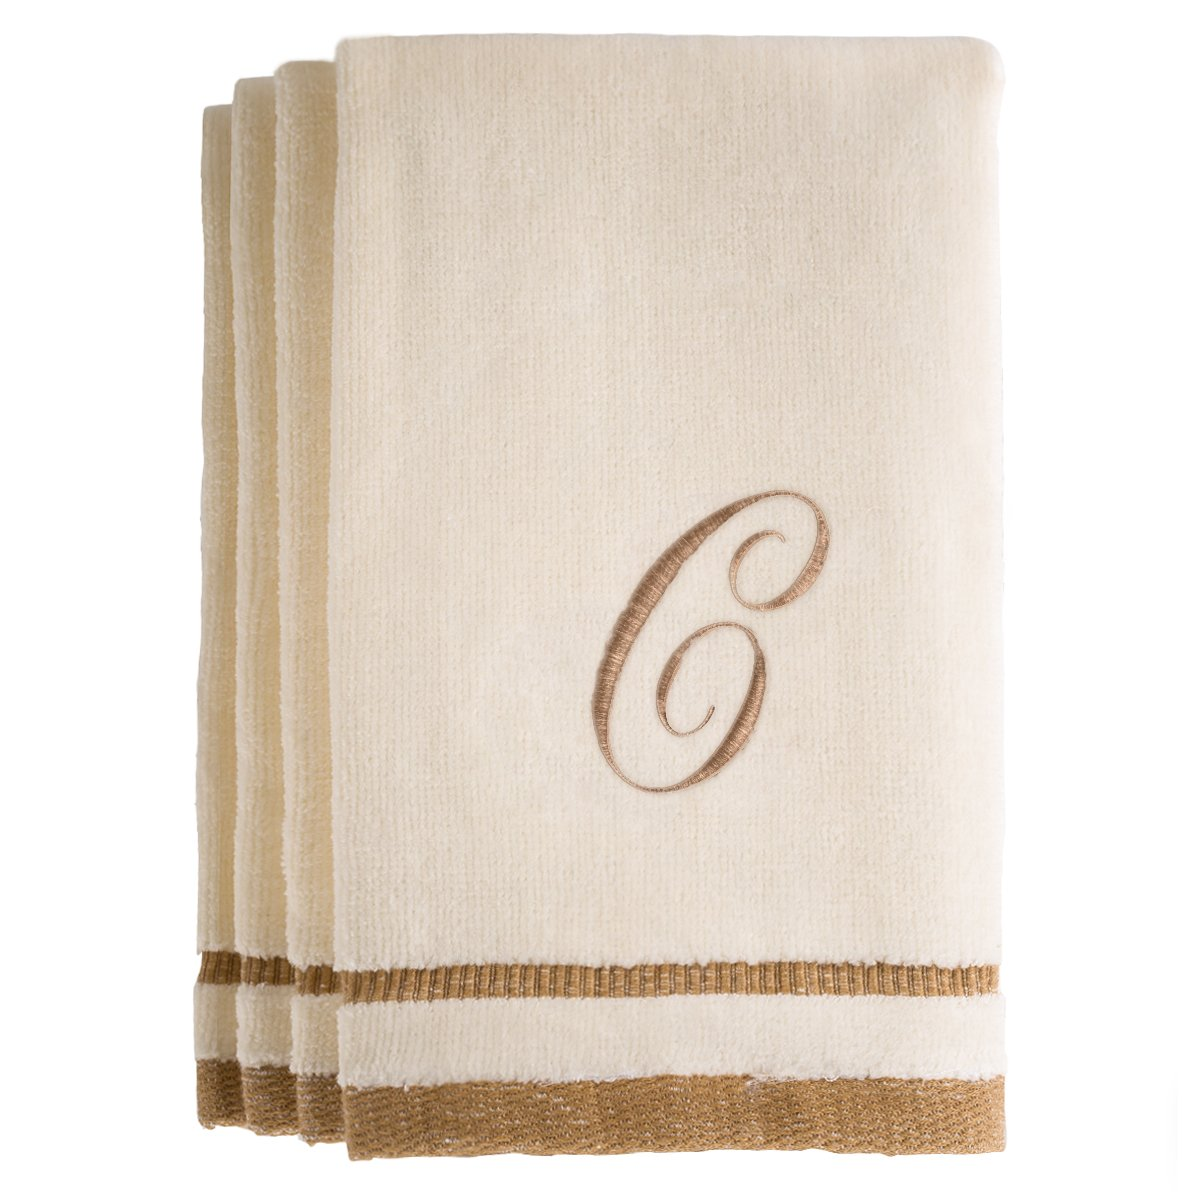 Monogrammed Gifts, Fingertip Towels, 11 x 18 Inches - Set of 4- Decorative Golden Brown Embroidered Towel - Extra Absorbent 100% Cotton- Personalized Gift- For Bathroom/Kitchen- Initial C (Ivory)